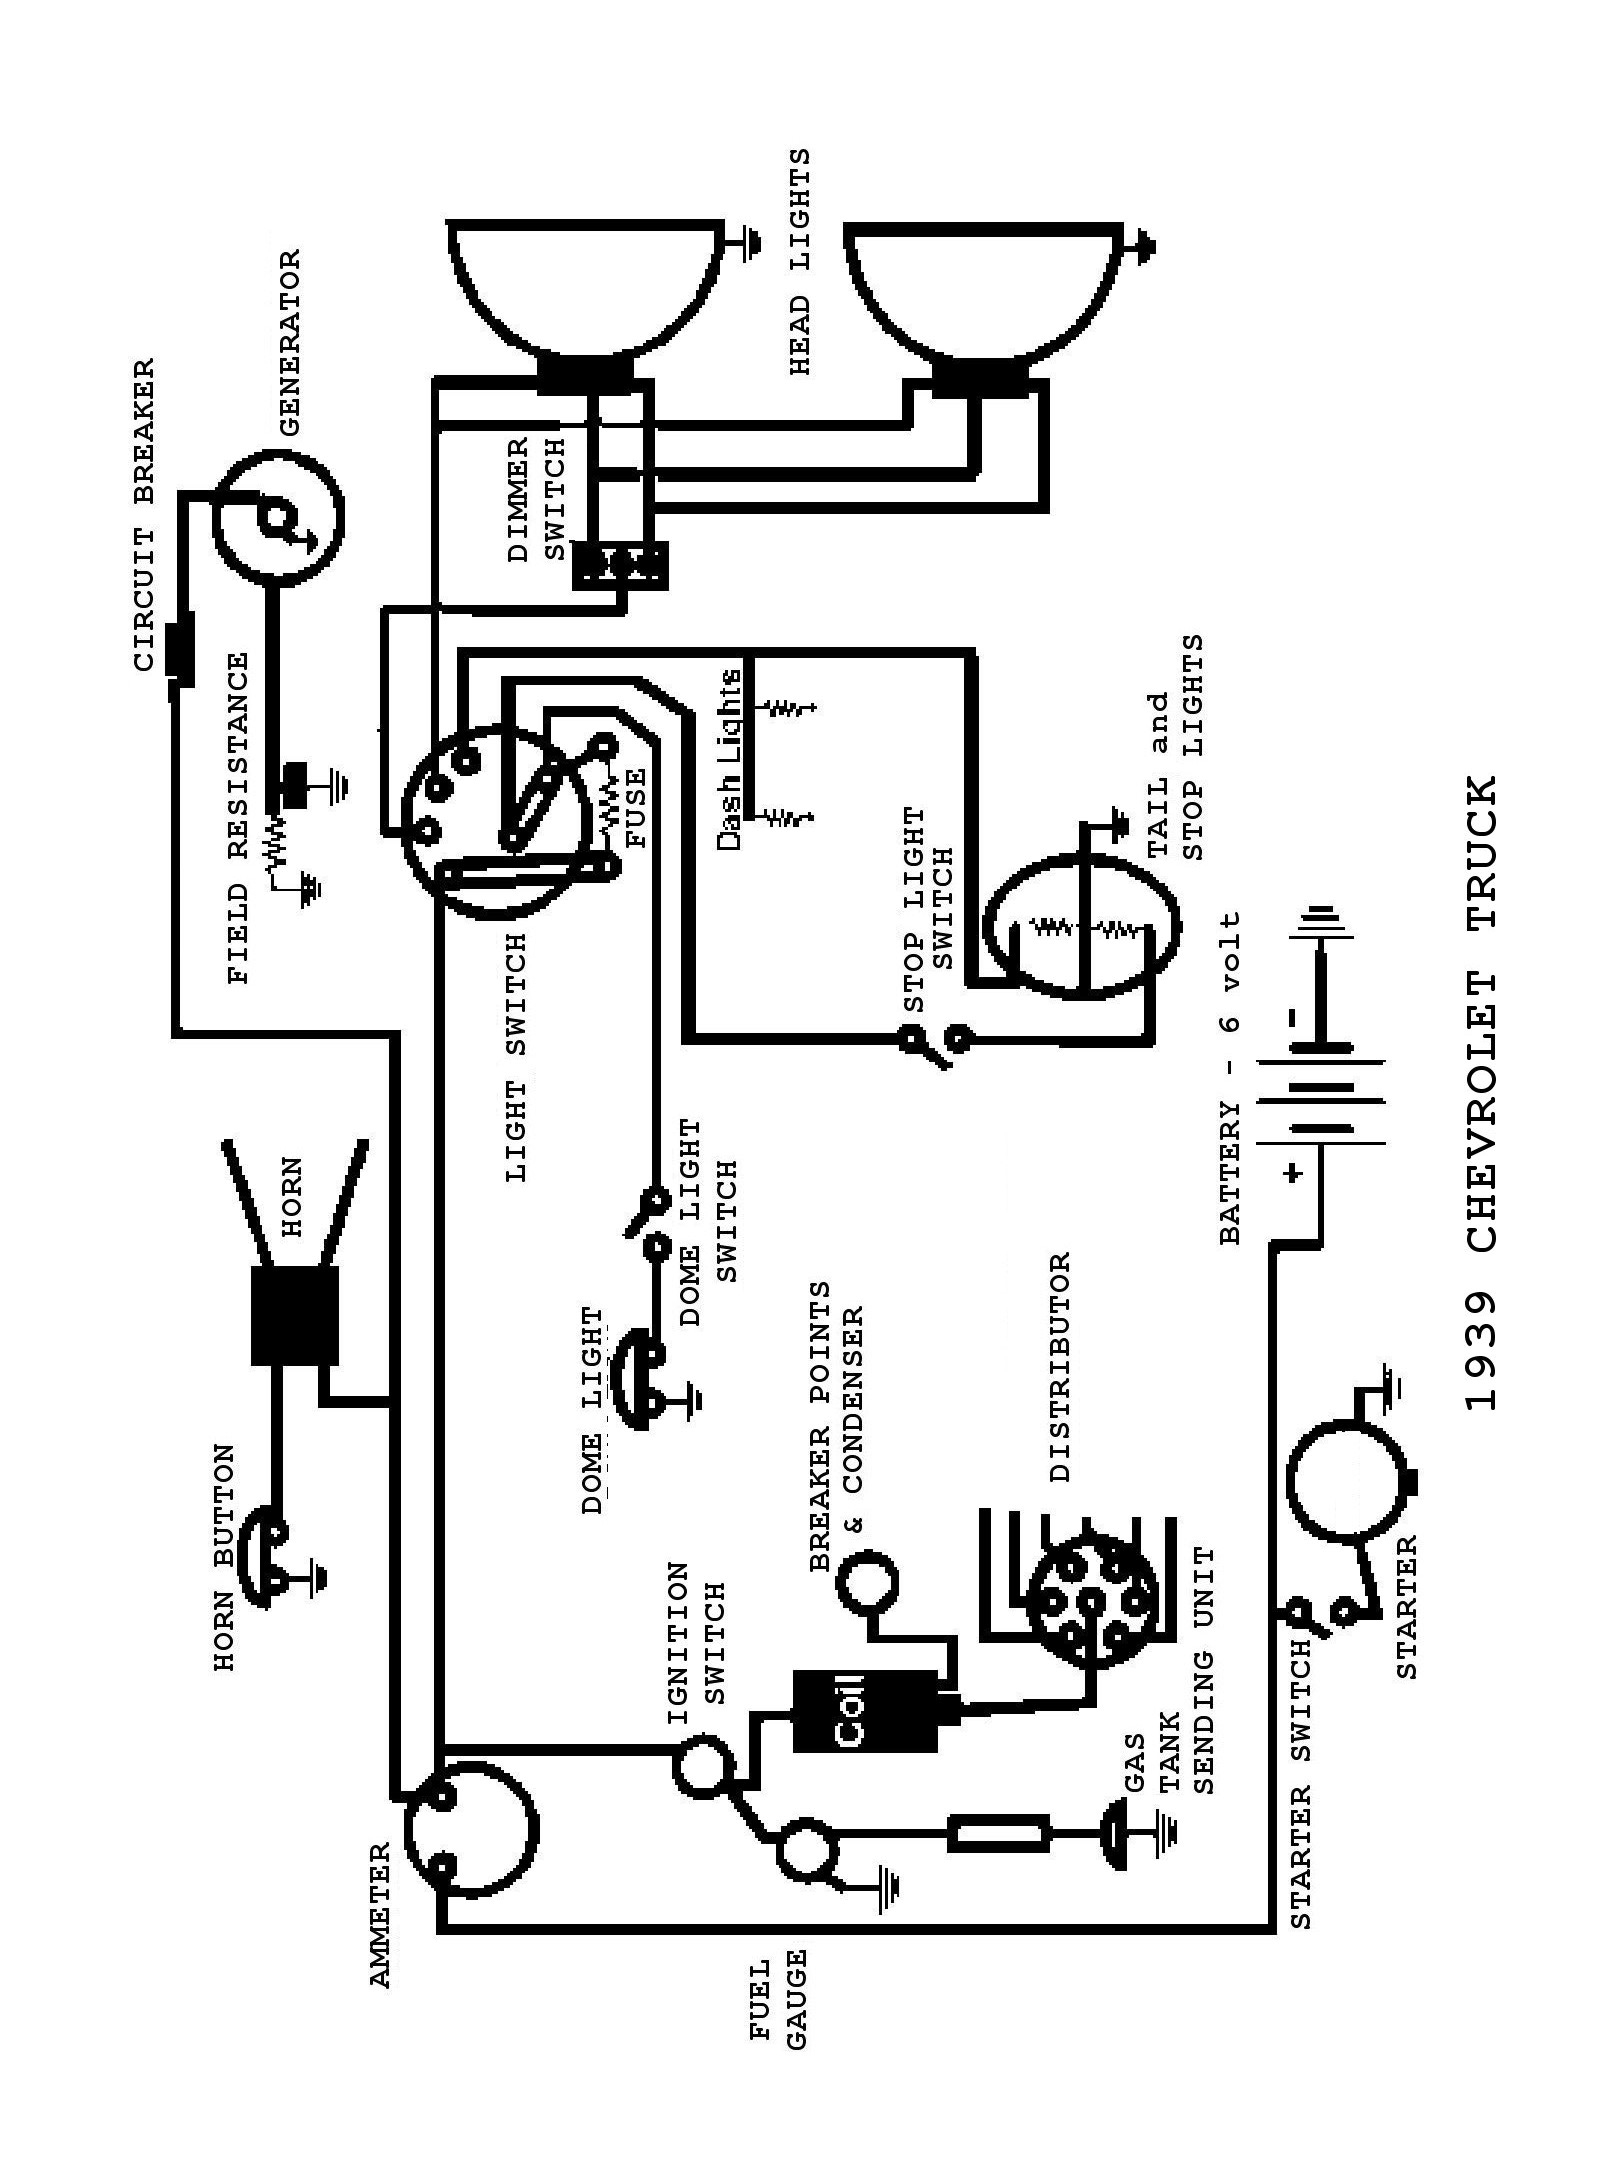 Points And Condenser Wiring Diagram | Wiring Library - Points And Condenser Wiring Diagram